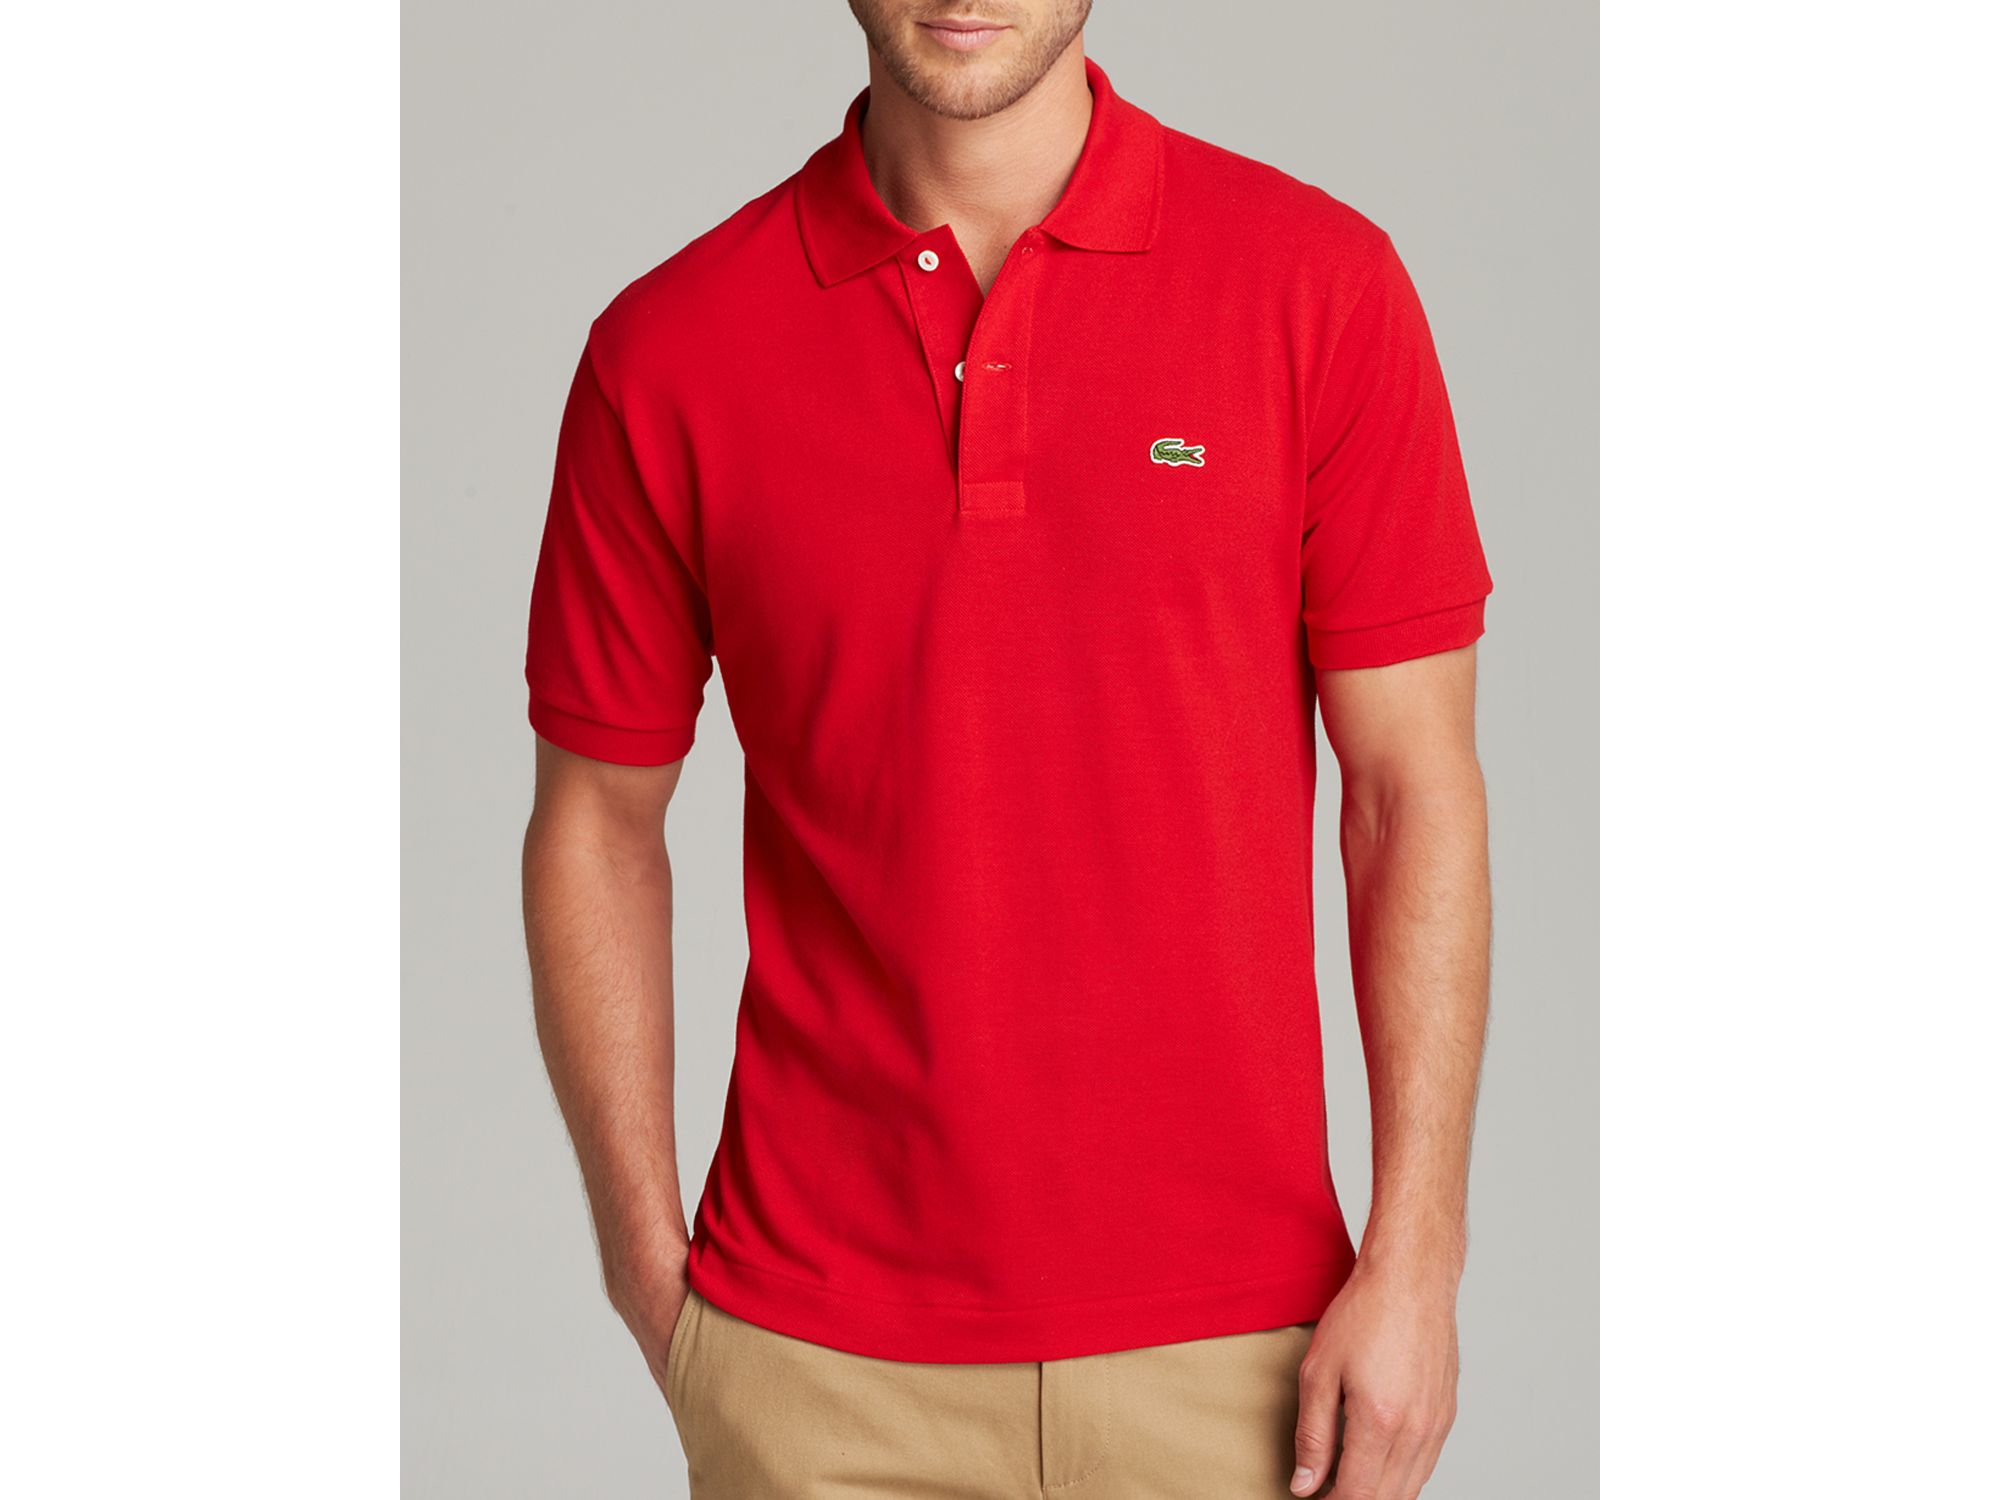 lacoste short sleeve piqu polo shirt classic fit in red for men. Black Bedroom Furniture Sets. Home Design Ideas